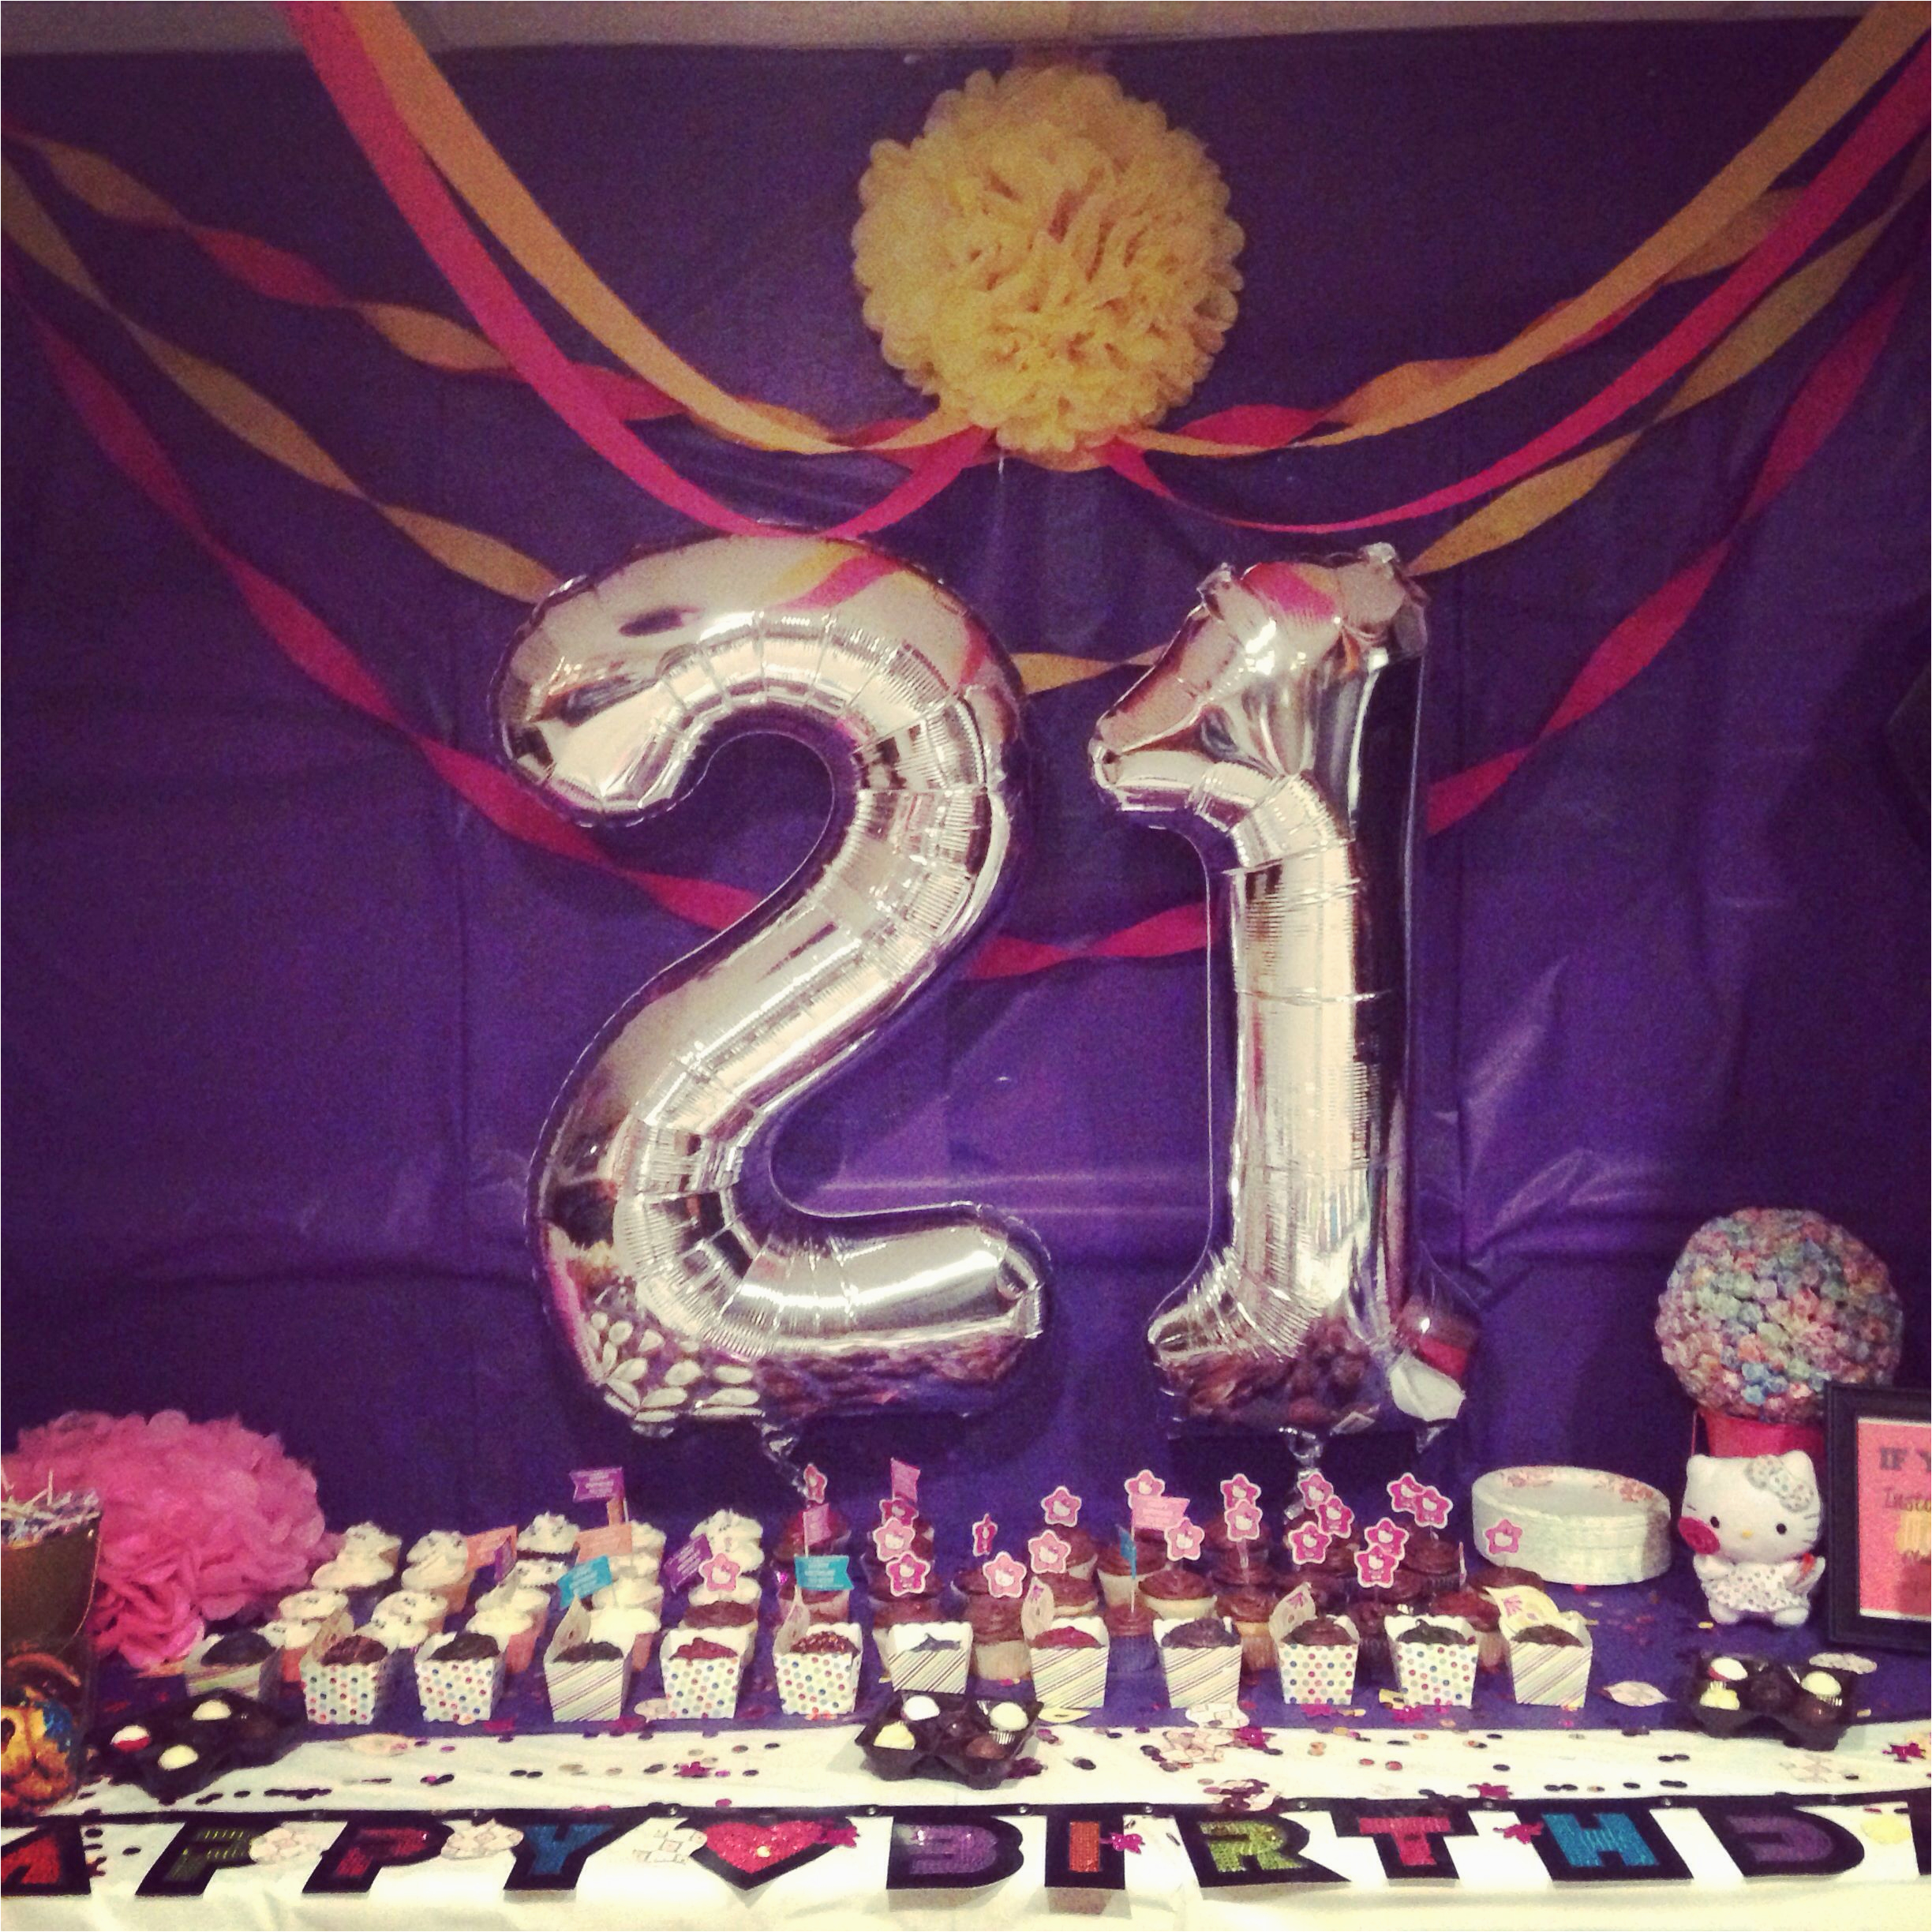 21 Birthday Party Decoration Ideas 21st Birthday Decorations Party